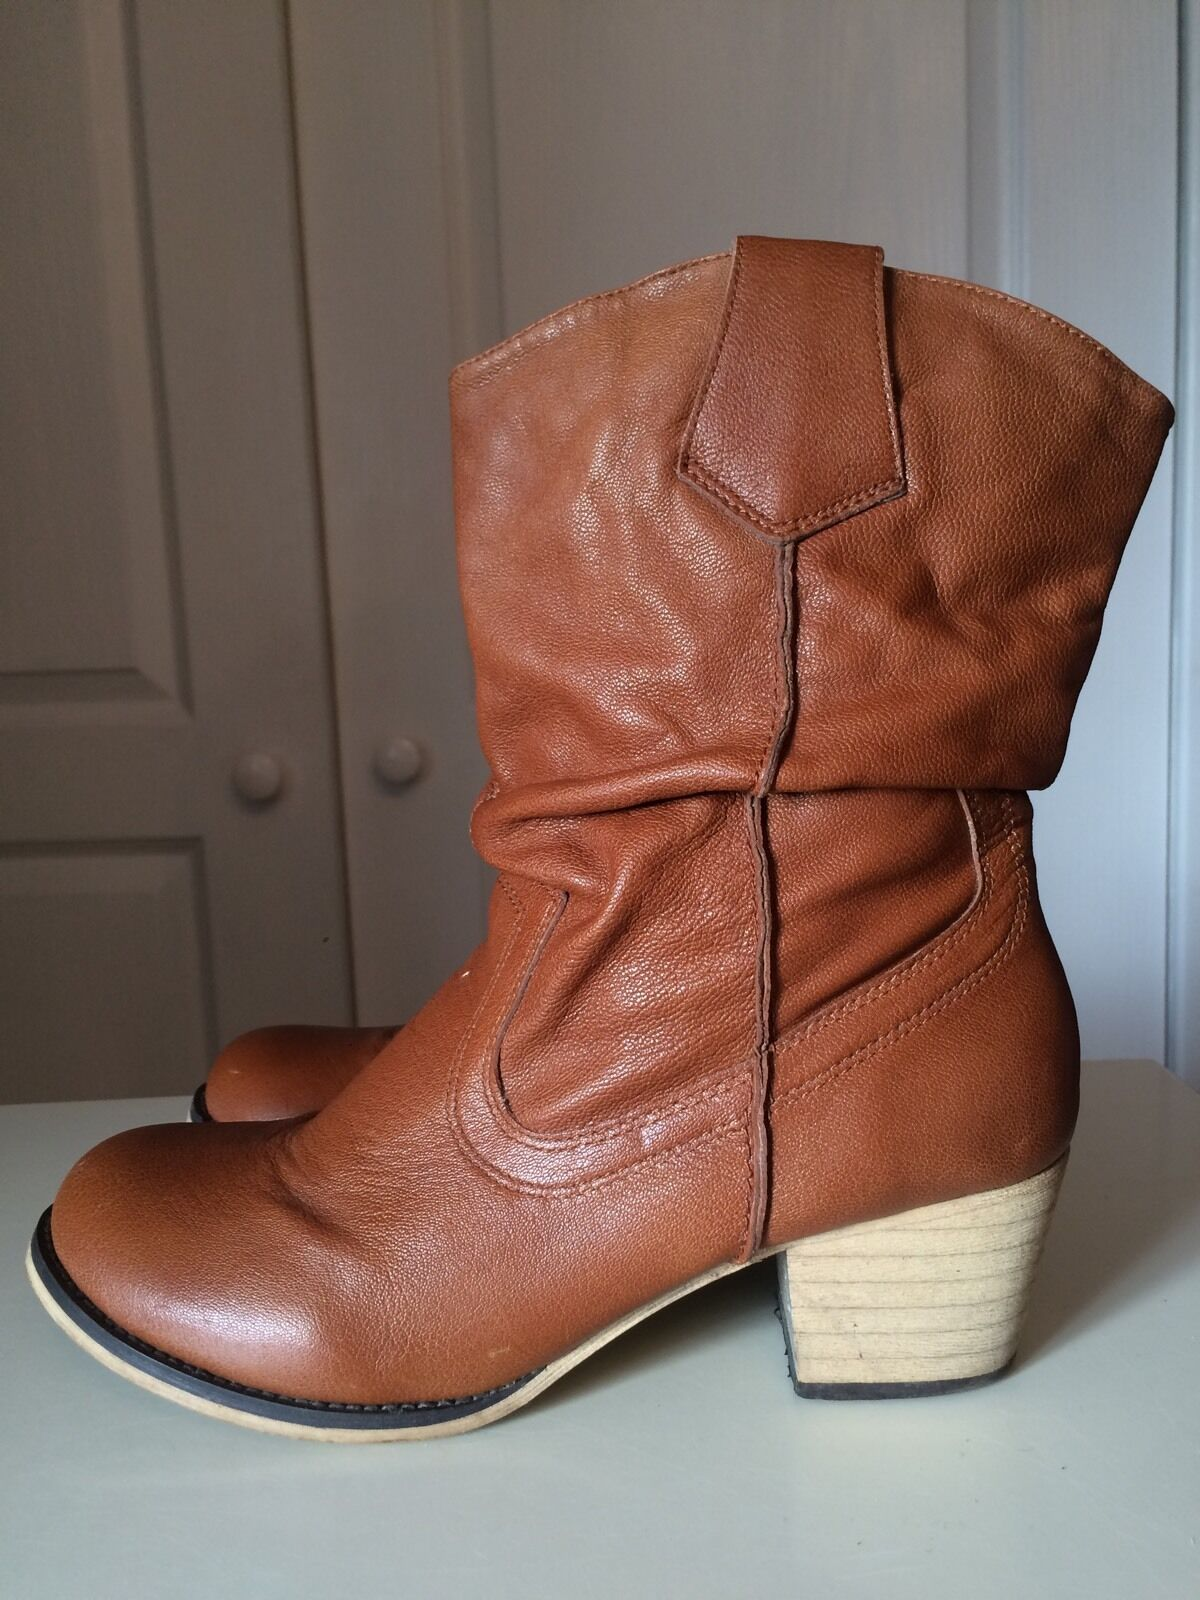 Marks And Spencer M&S Autograph Ankle Calf High Heel Brown shoes Boot Size 6 39